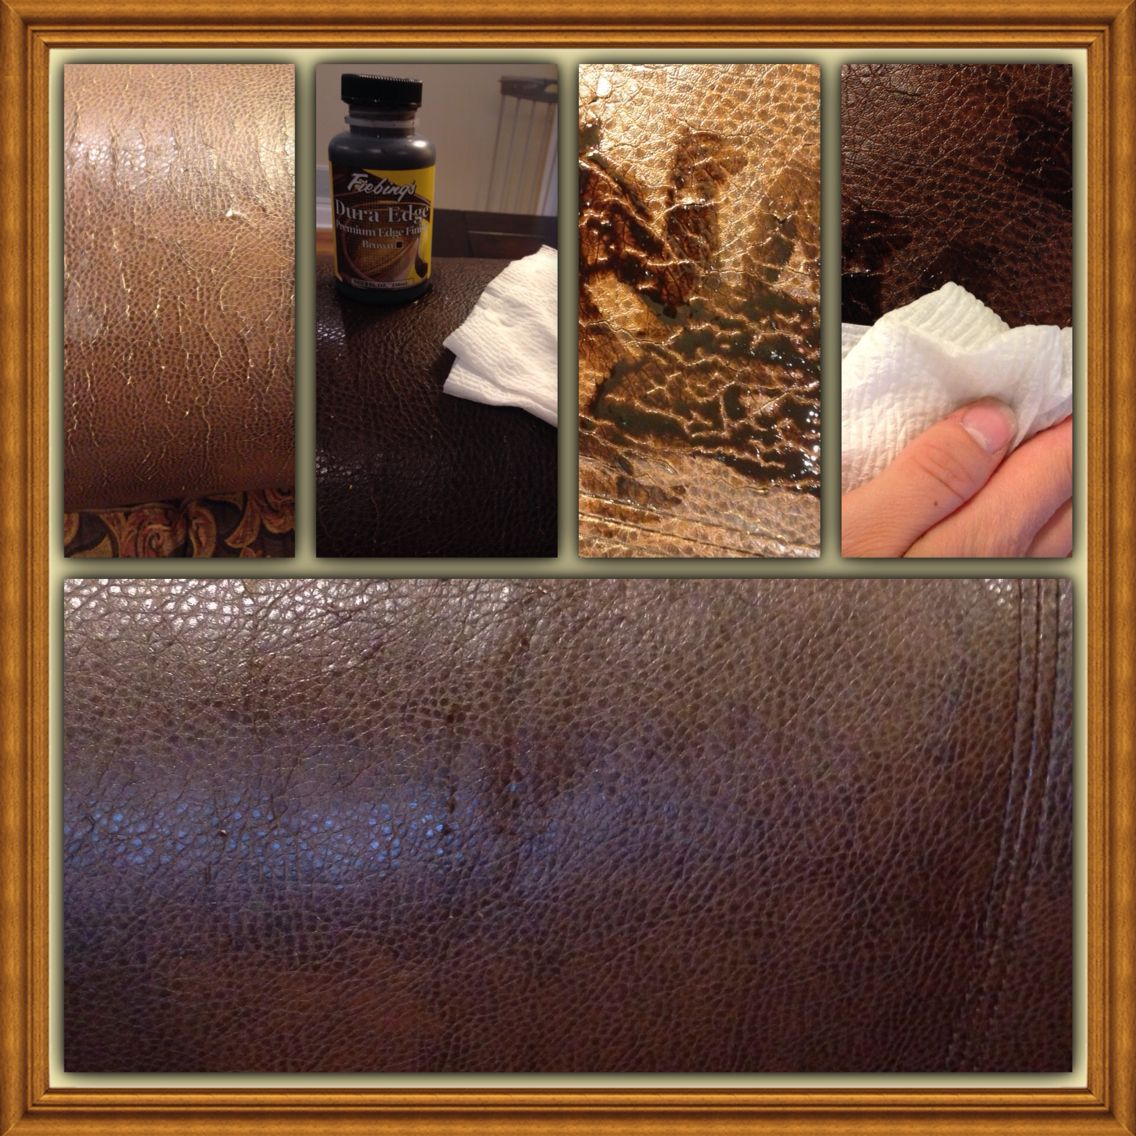 How To Temporarily Repair A Cracked Leather Couch. 1. Coat With Fiebling's  Edge Finish